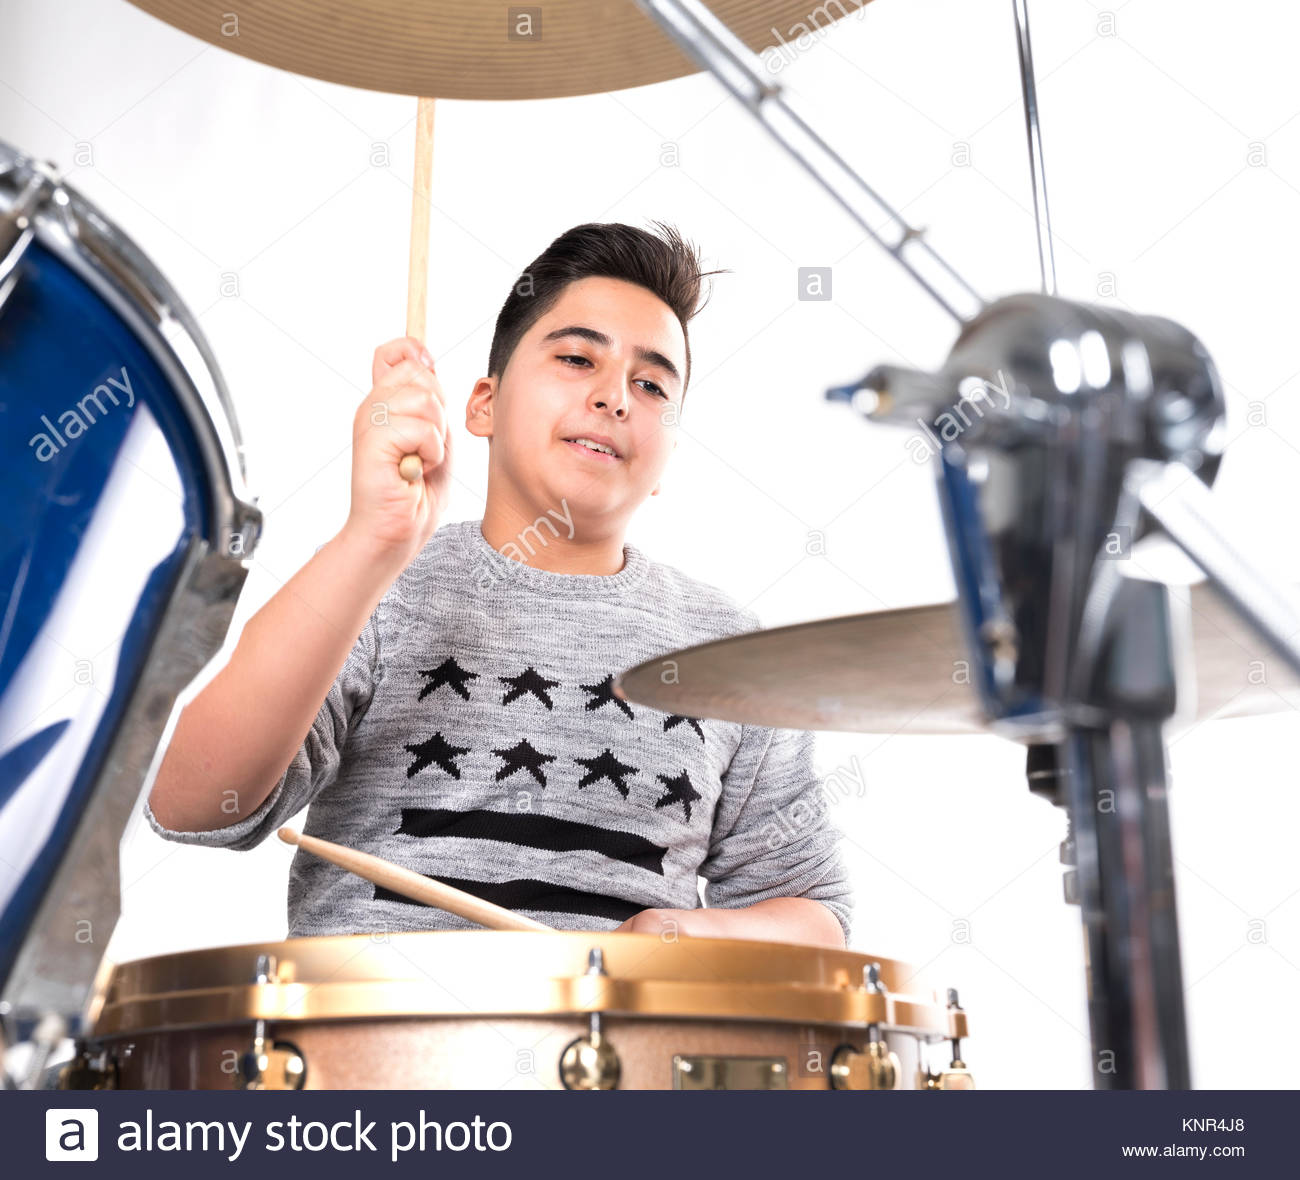 teen boy at drumset in studio against white background Stock Photo 1300x1180